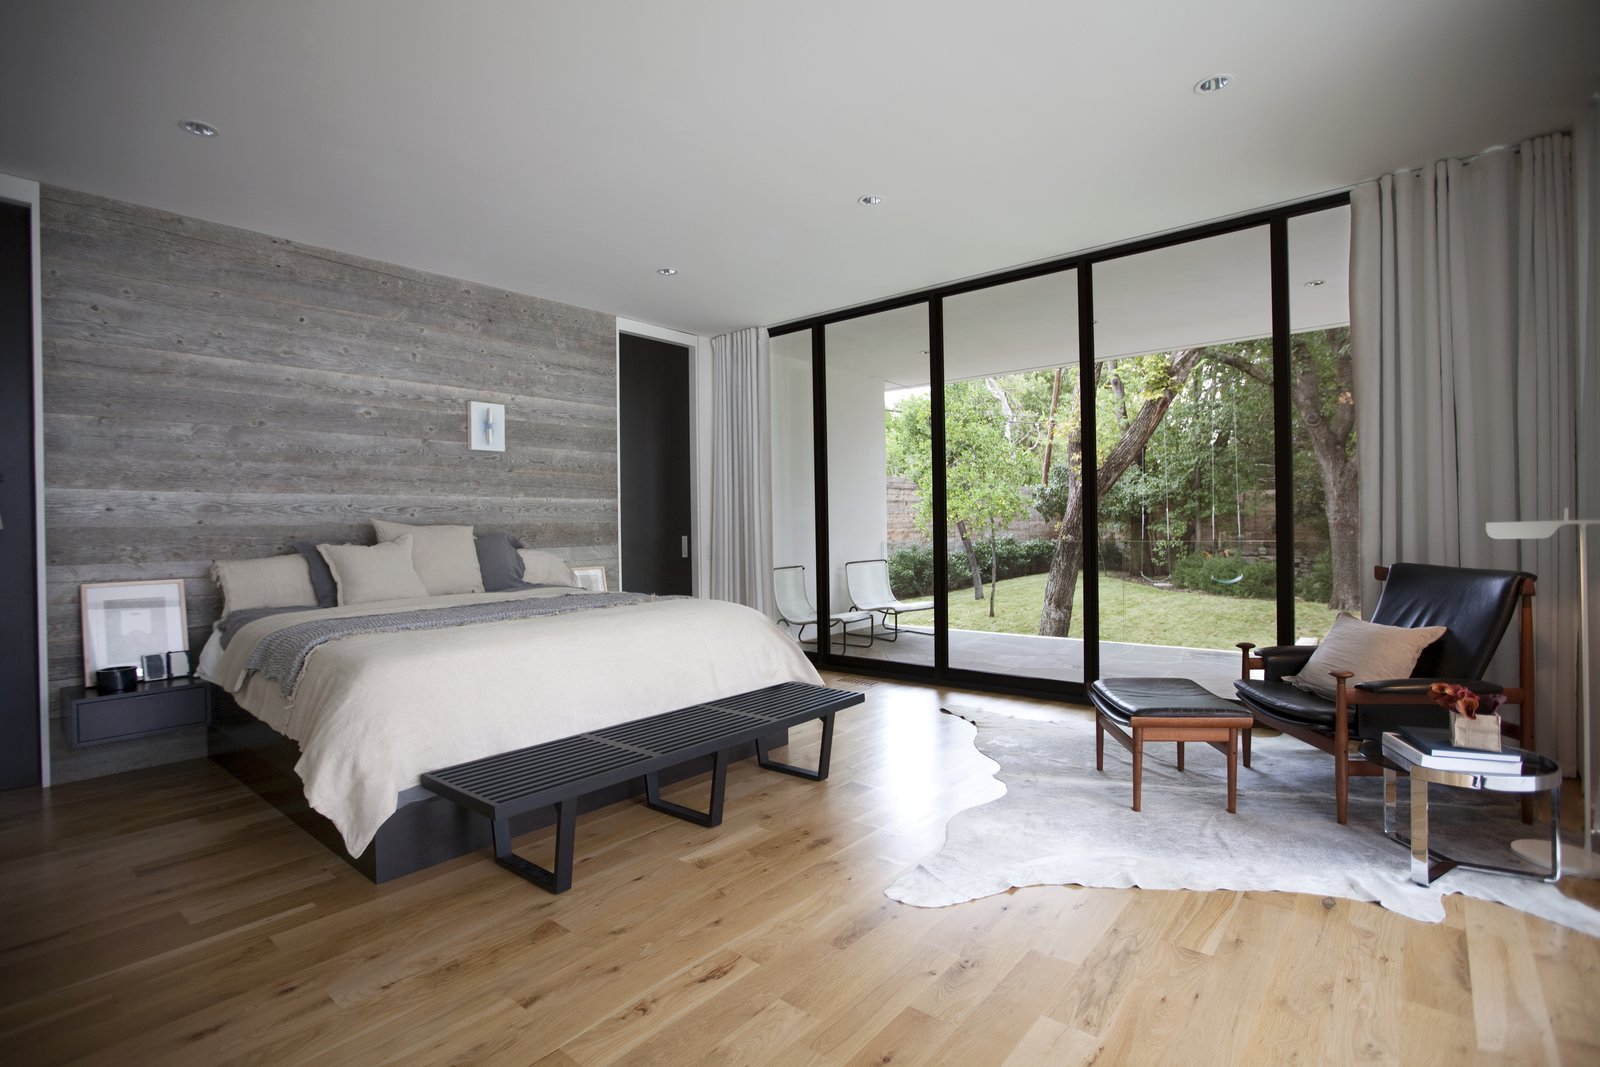 """In the master bedroom, the textural appeal of the reclaimed wood wall, bedding, and rug contrasts with the black leather of the African-inspired 'Bwana' Chair by Finn Juhl, which sits beside a 'TAB' reading lamp by Barber Osgerby. """"We believe a quality project is defined by the sum of all its parts versus any individual feature or design move,"""" Field says.  Preston Hollow by Laura C. Mallonee"""